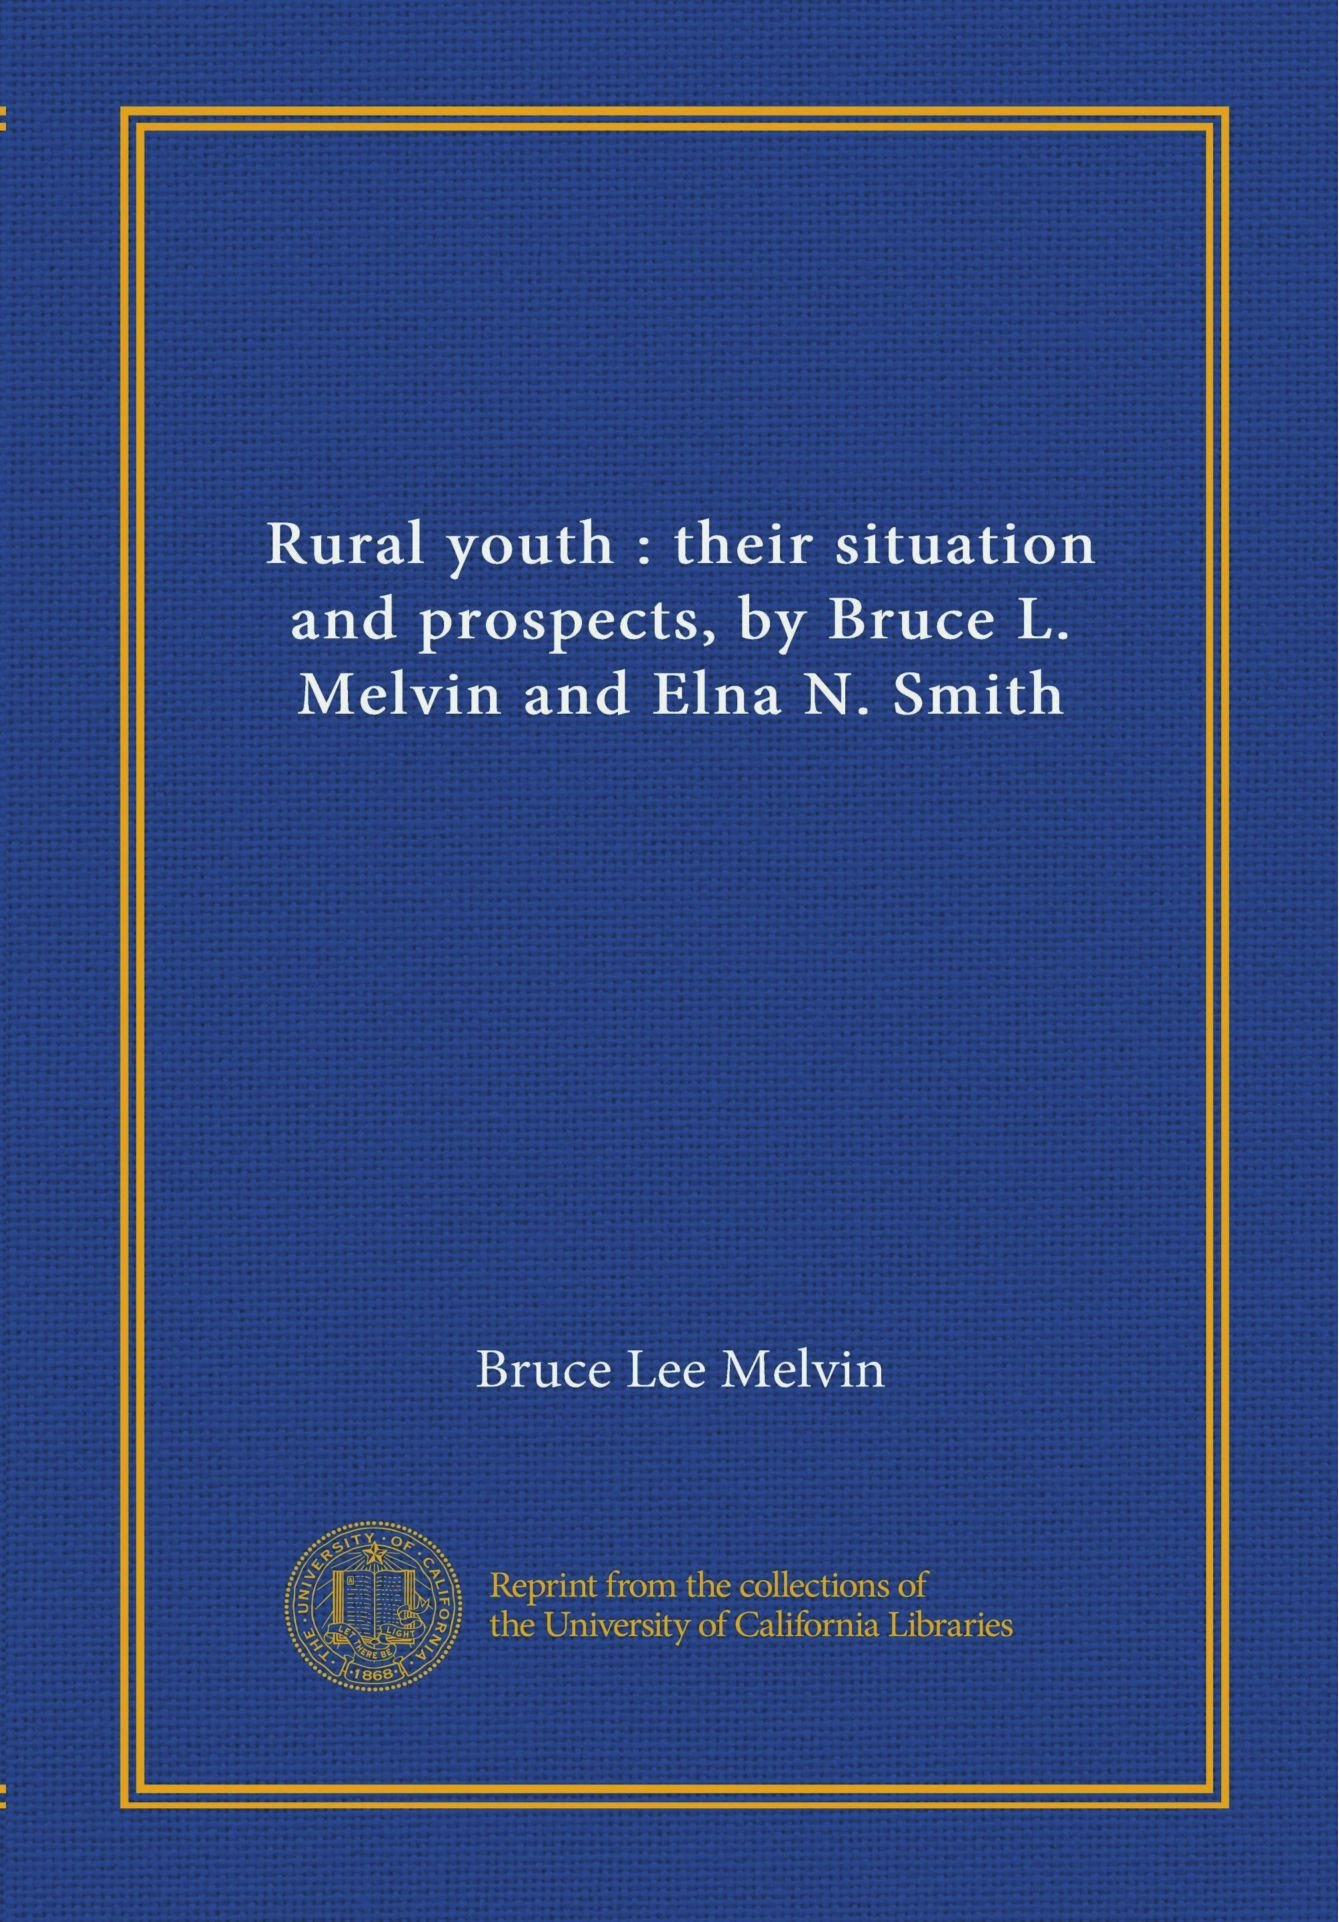 Rural youth : their situation and prospects